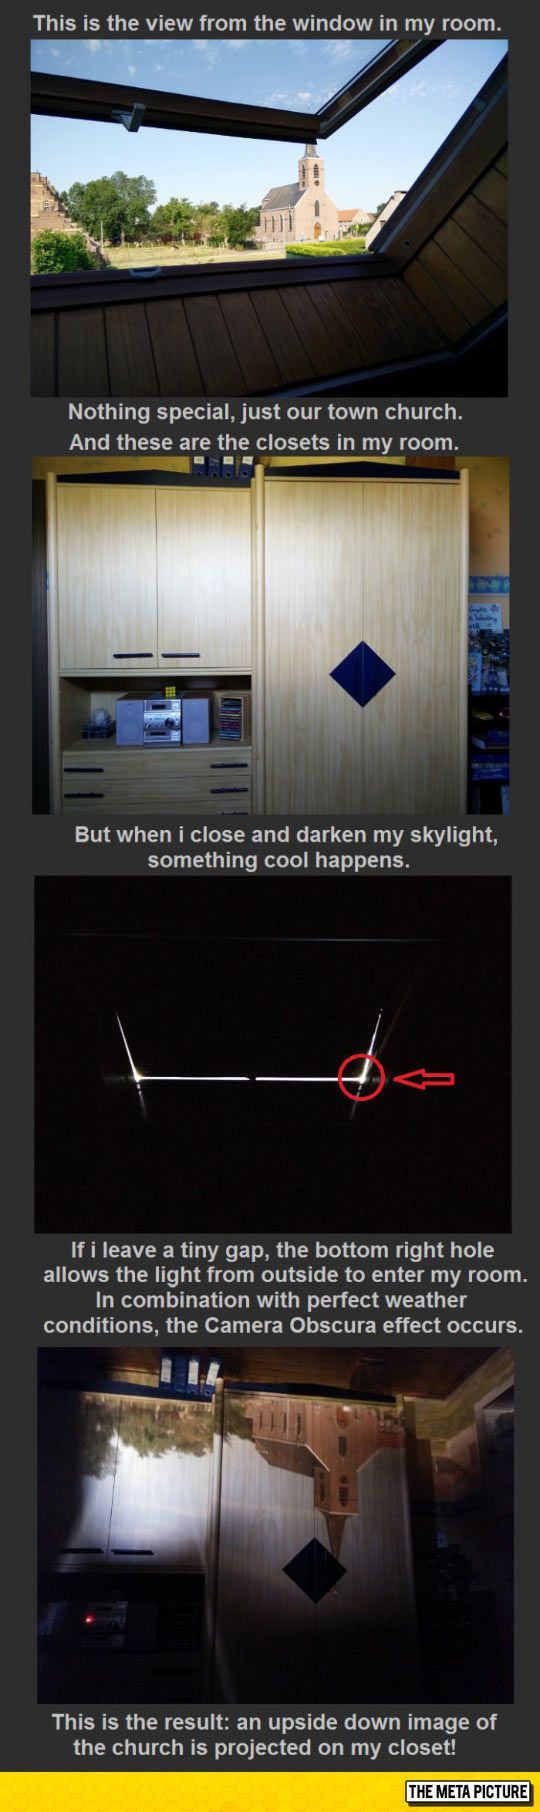 382 best Coolness images on Pinterest | Funny gifs, Funny videos ...